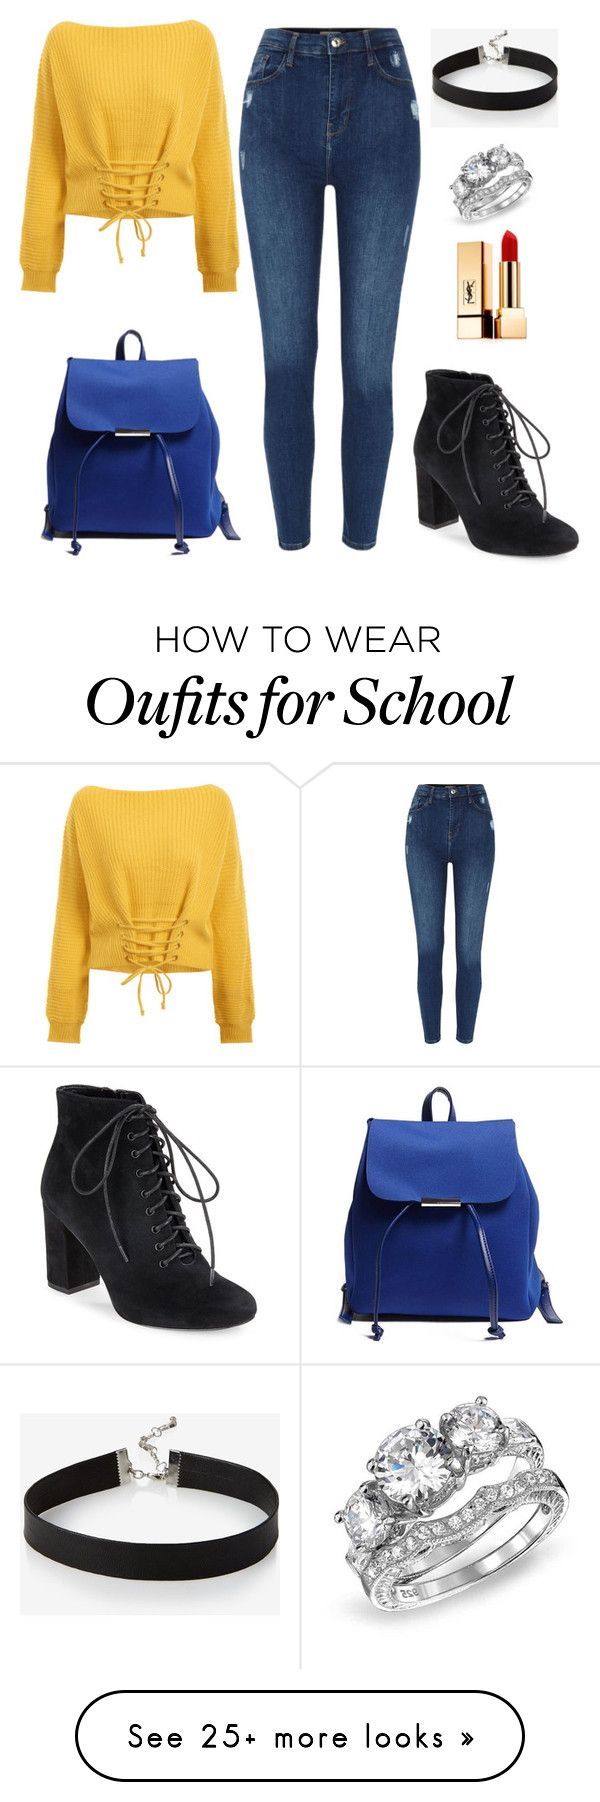 """go to school #8"" by maeva-hoarau on Polyvore featuring Forever 21, 424 Fifth, Bling Jewelry, Express and Yves Saint Laurent"